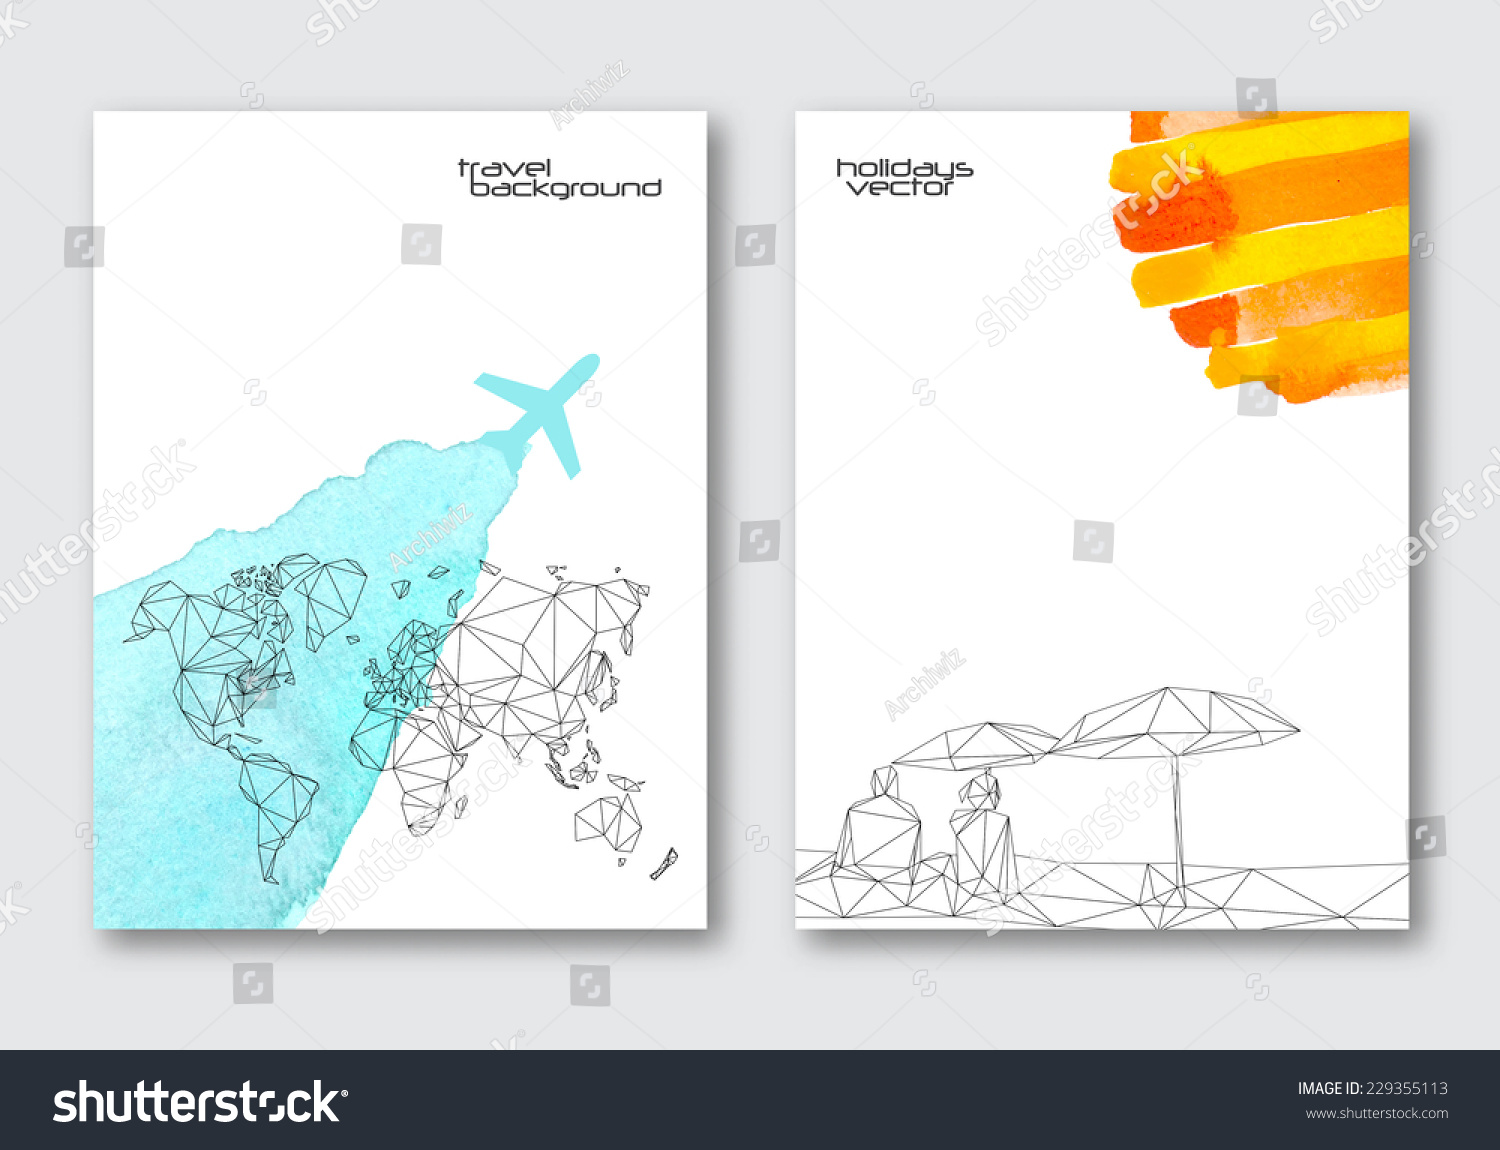 Vector travel poster templates hand drawn vectores en stock vector travel poster templates hand drawn watercolor stain background triangular world map and abstract gumiabroncs Gallery